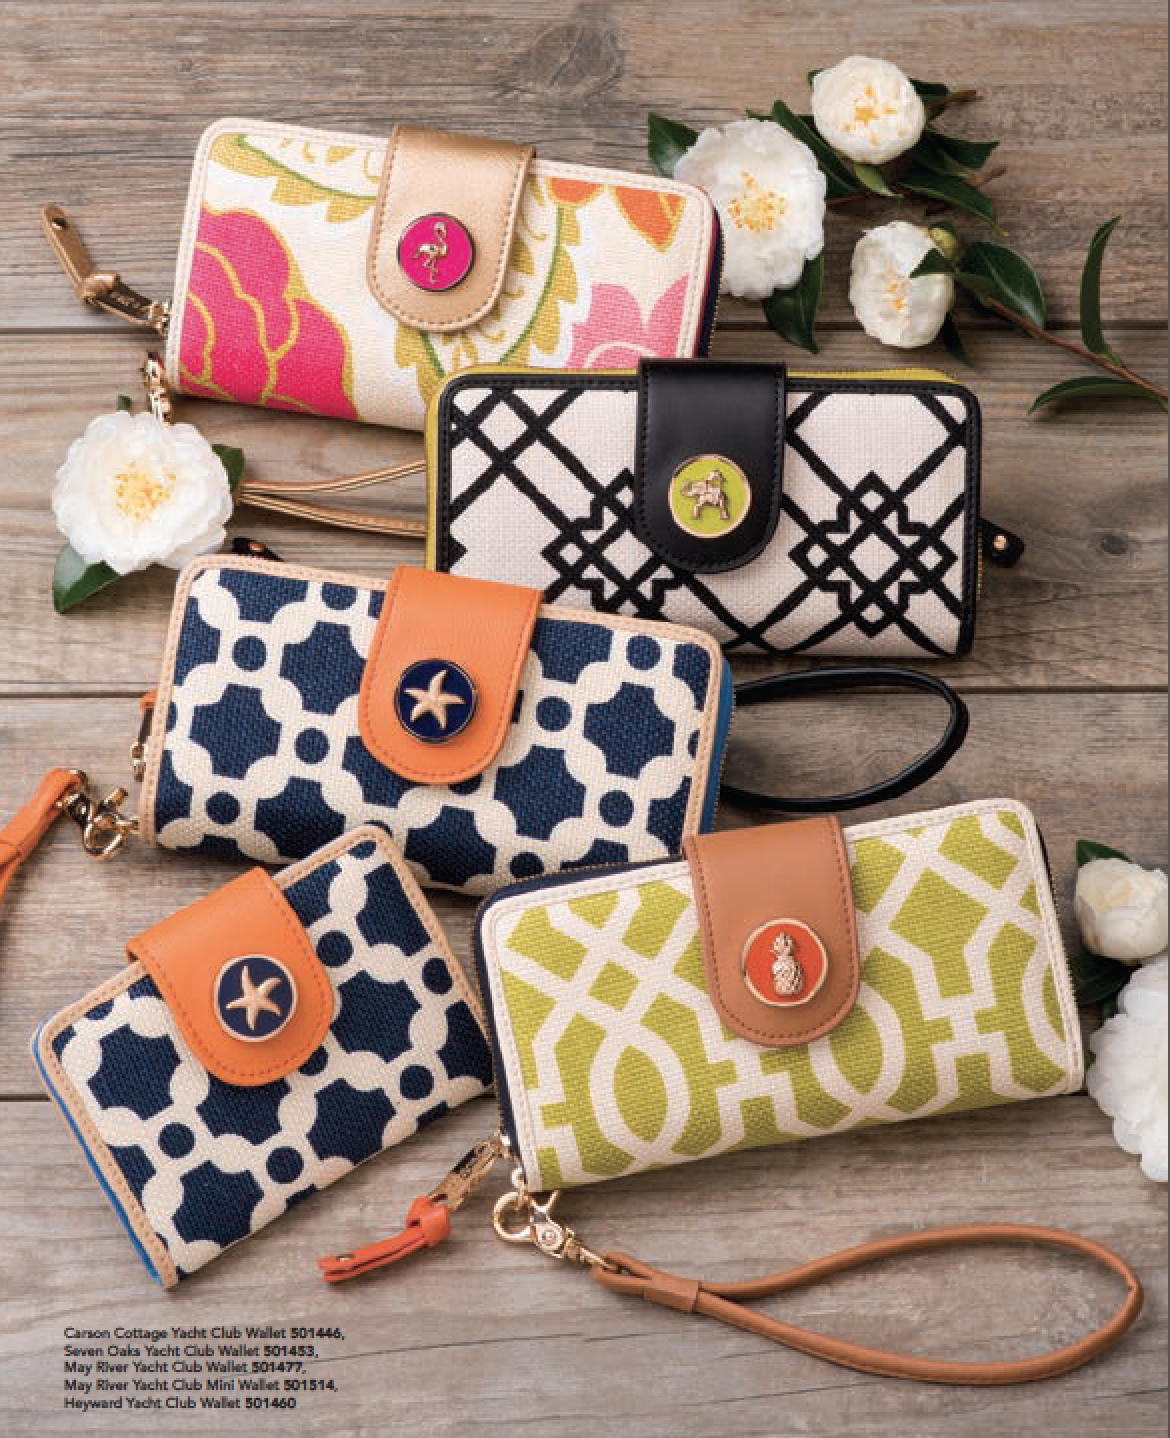 5f50736c6e59 Spartina 449 - Carson Cottage Yacht Club Wallet